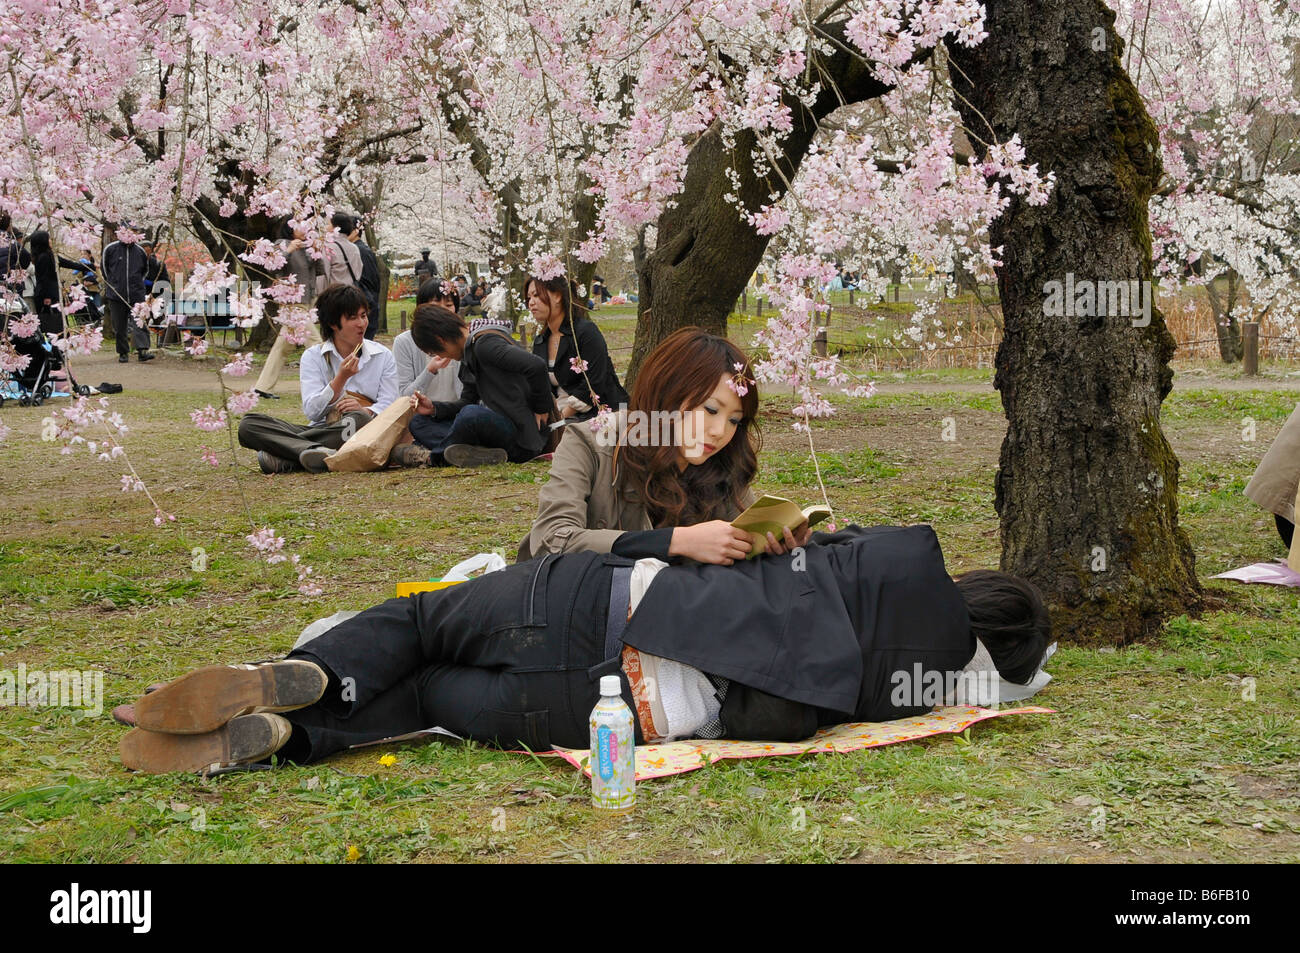 Young Couple Under Blossoming Cherry Trees While Celebrating